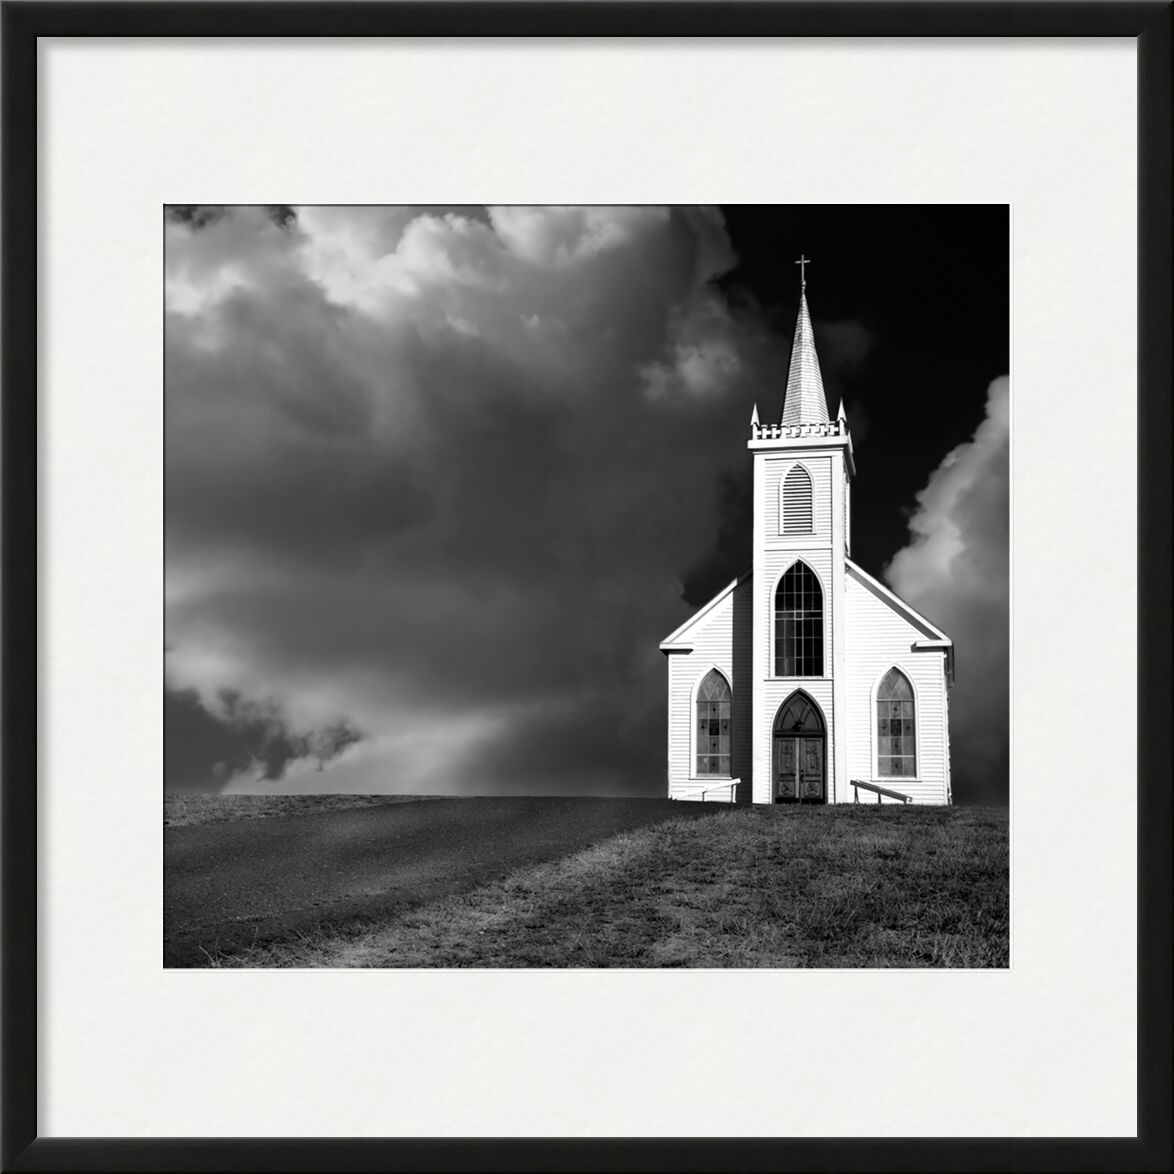 Church picture, ANSEL ADAMS - 1937 from AUX BEAUX-ARTS, Prodi Art, road, loneliness, ANSEL ADAMS, church, clouds, storm, meadow, thunderstorm